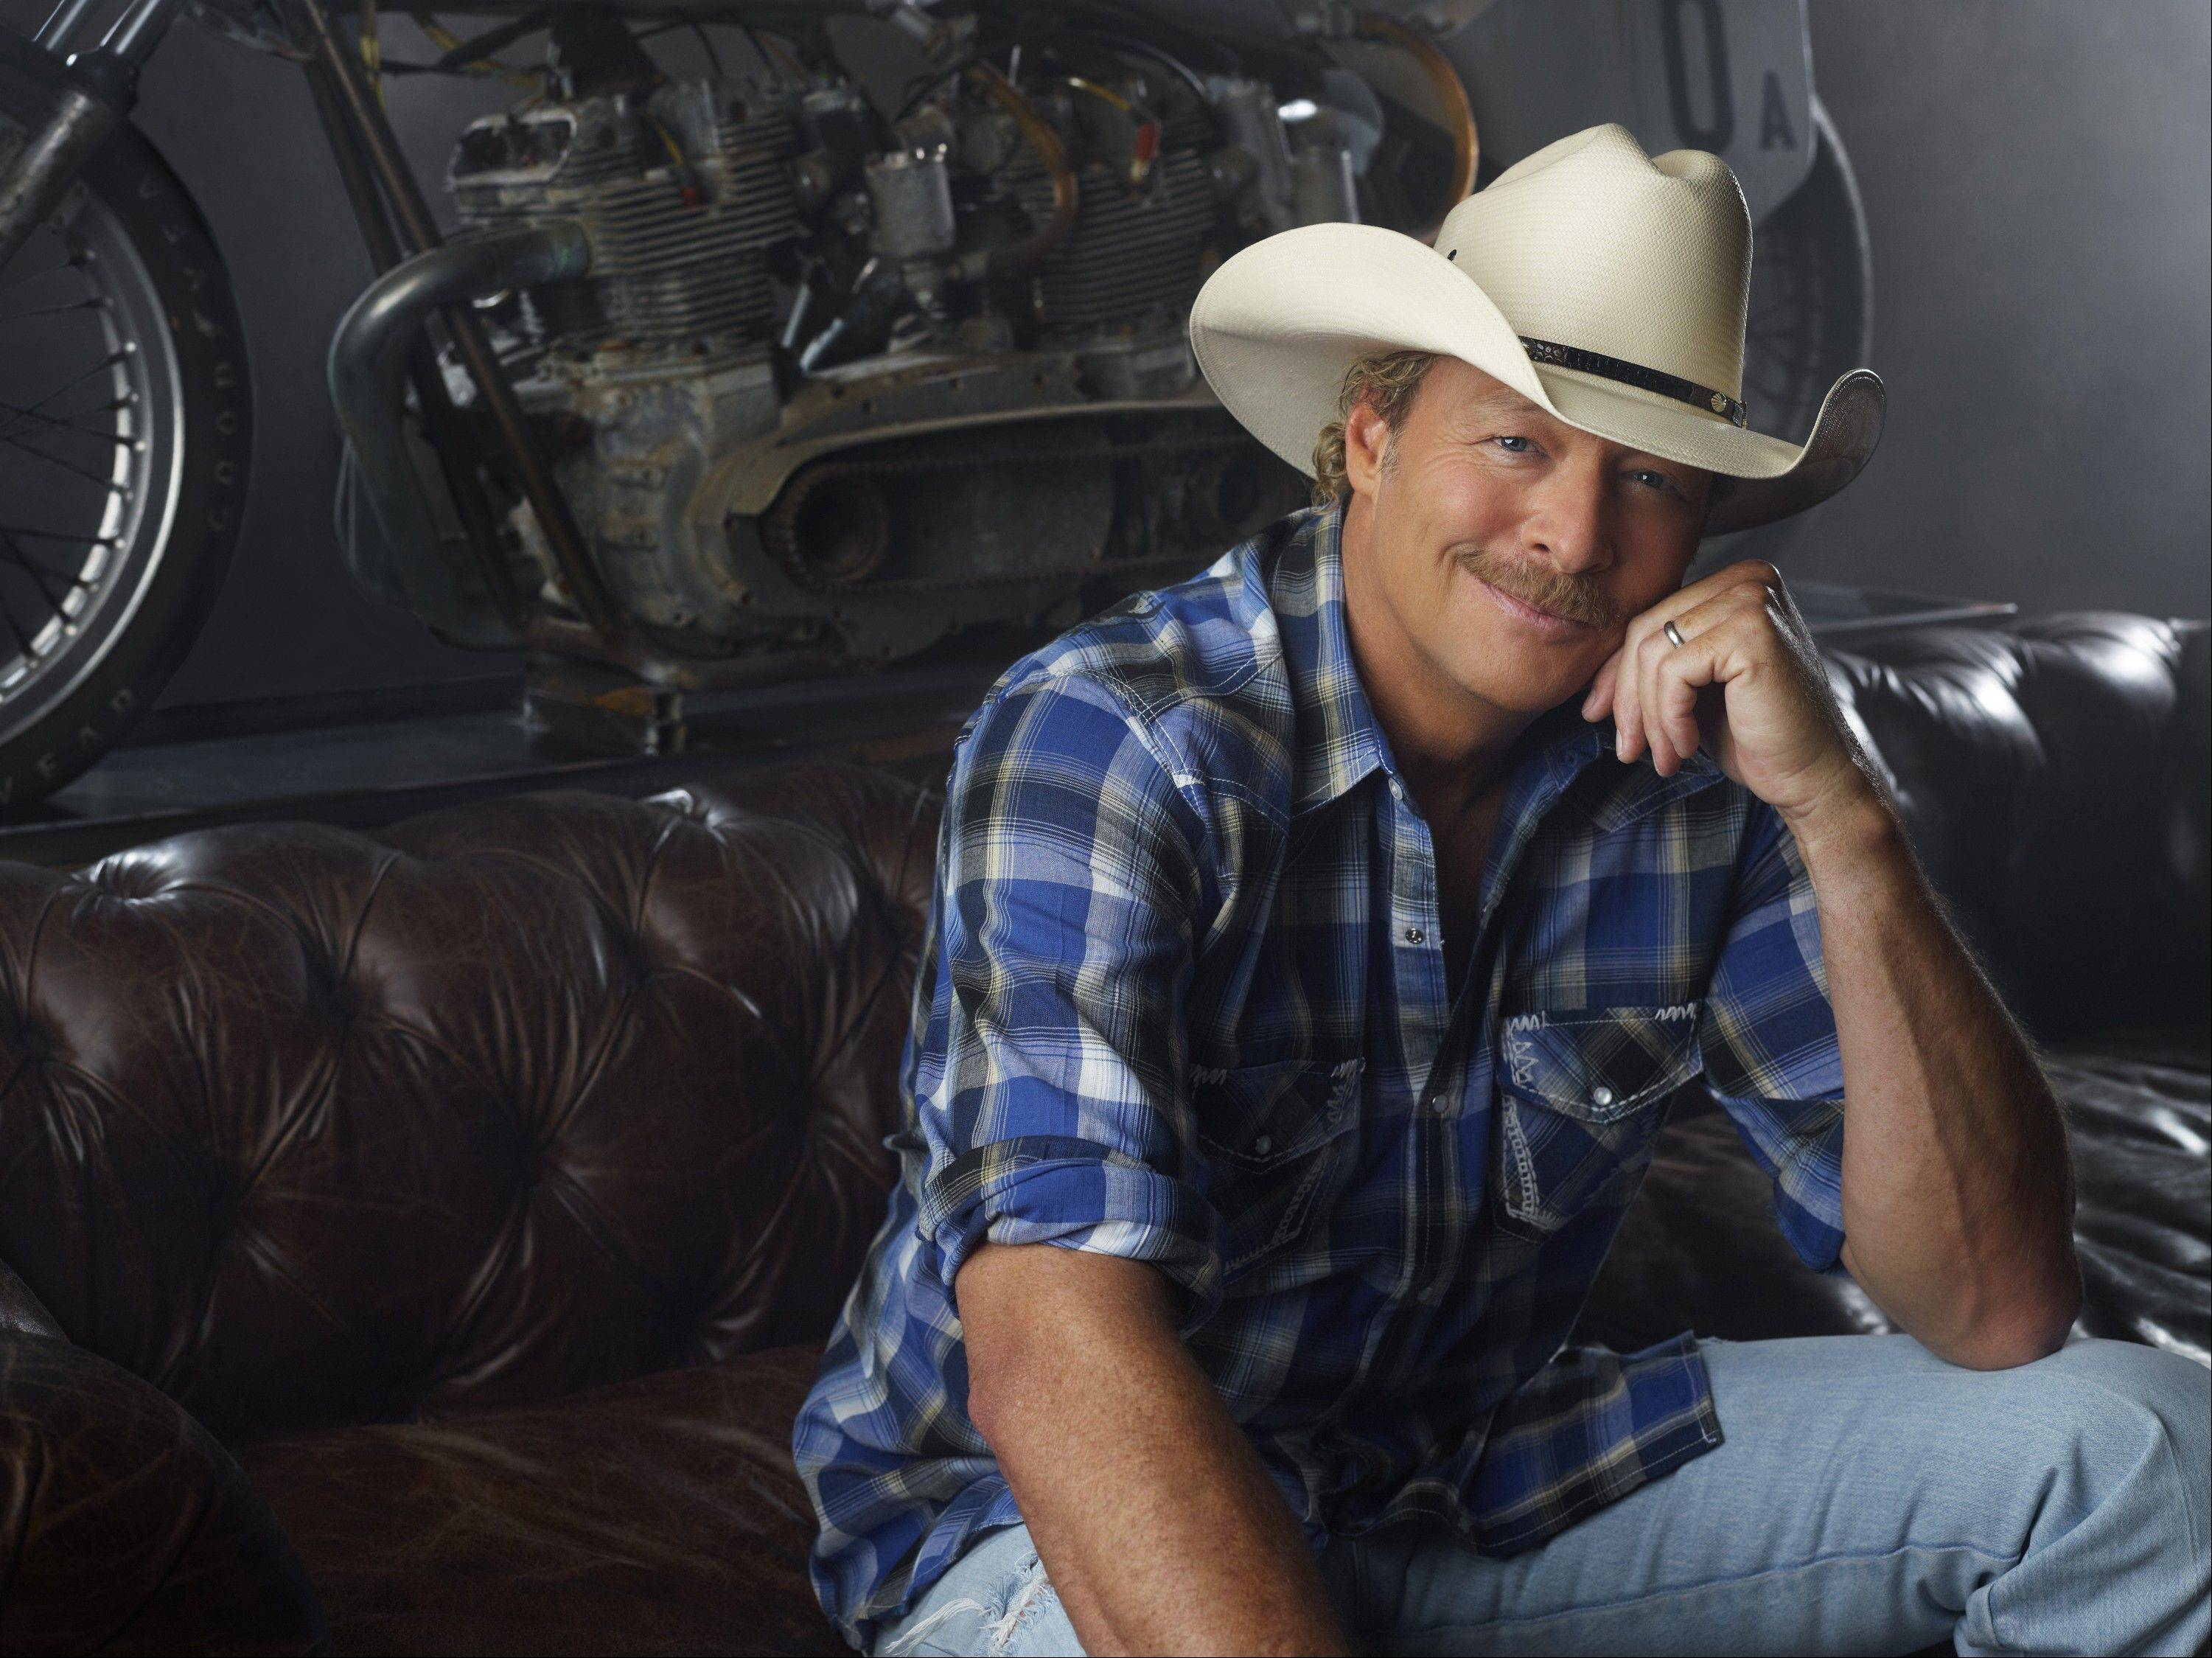 Country music superstar Alan Jackson comes to the Sears Centre Arena in Hoffman Estates on Nov. 9.